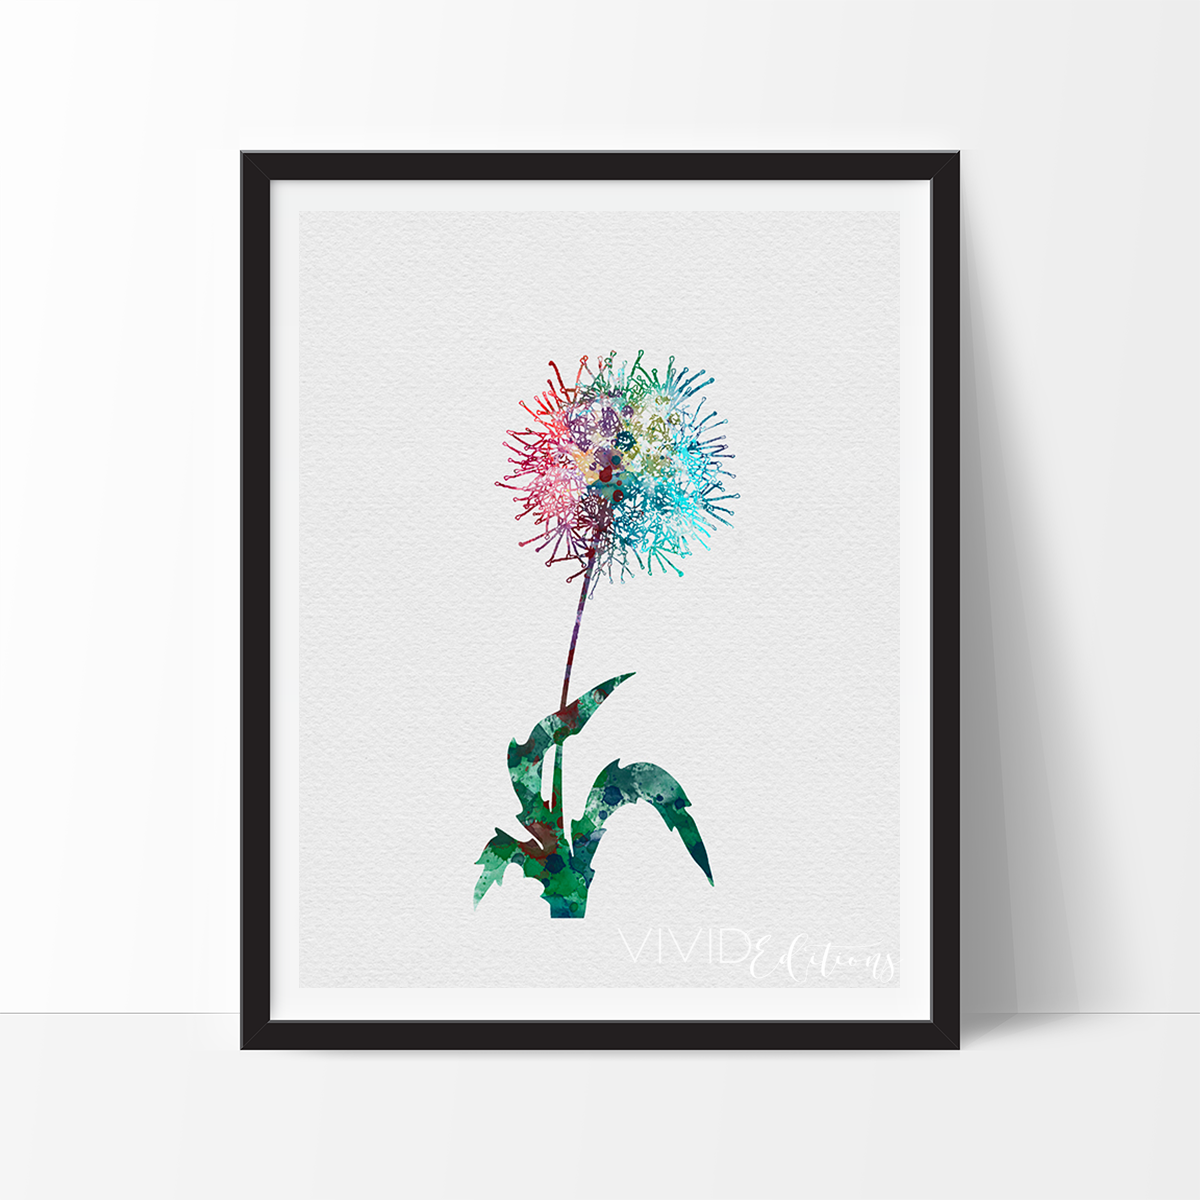 Dandelion Flower Watercolor Art Print Watercolor Art Prints Watercolour Nursery Art Art Prints